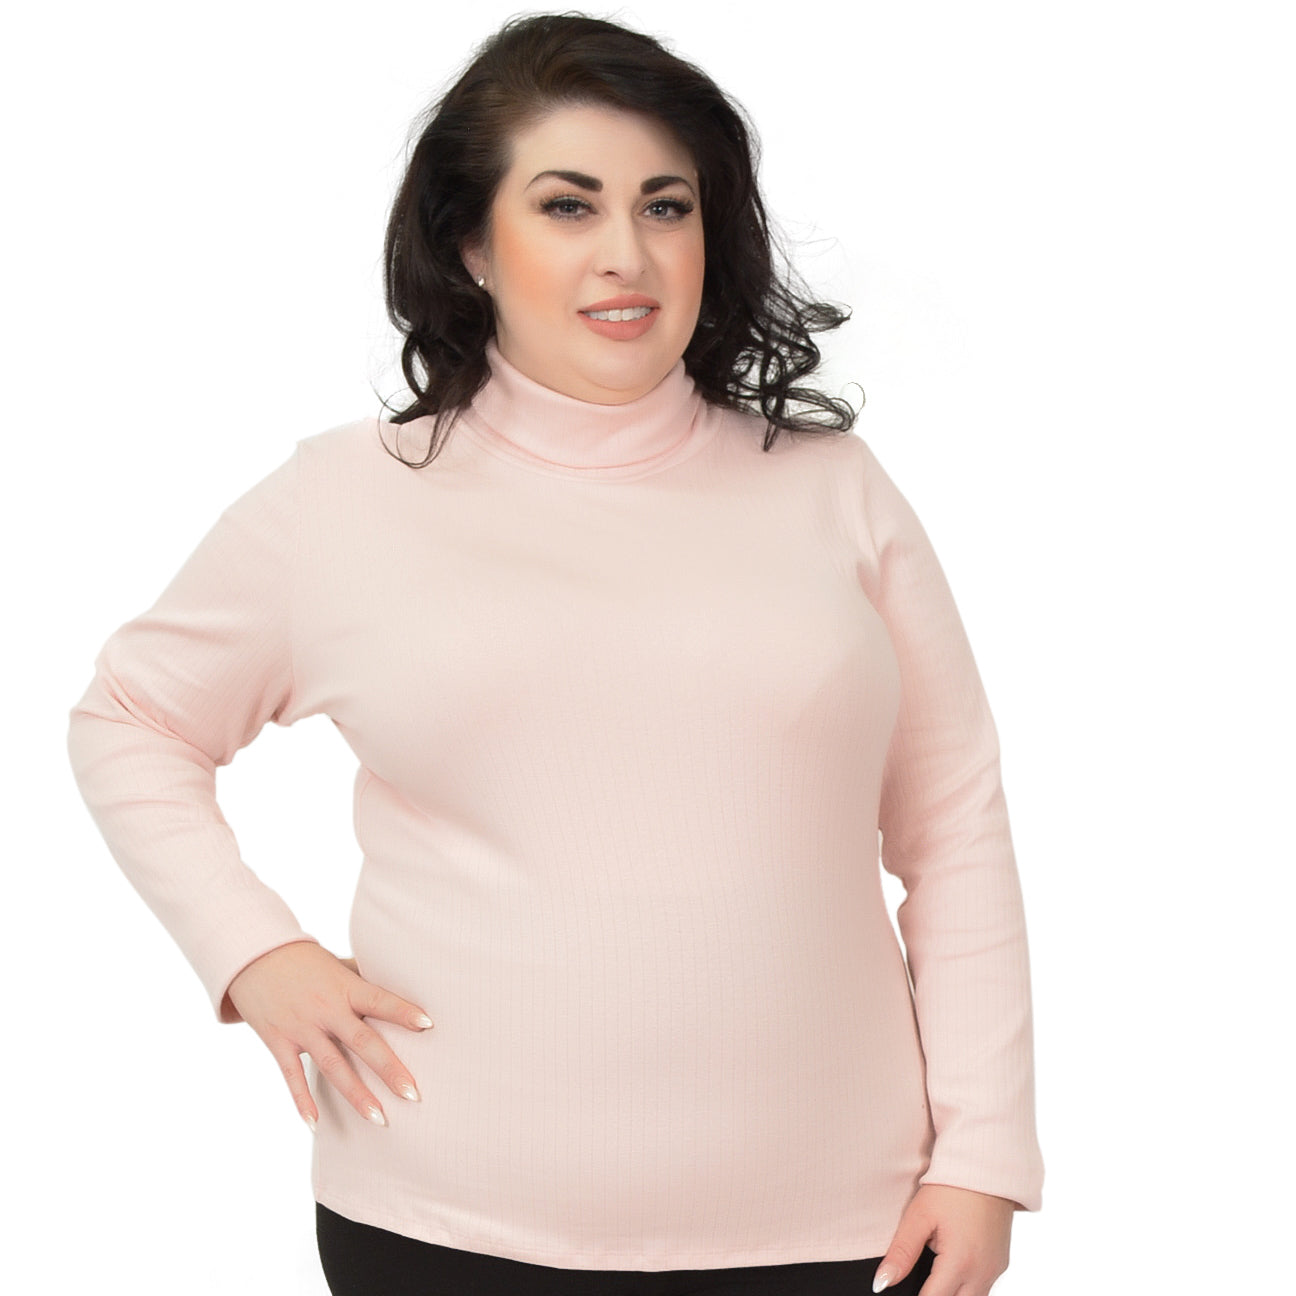 Plus Size Warm Long Sleeve Turtleneck Top